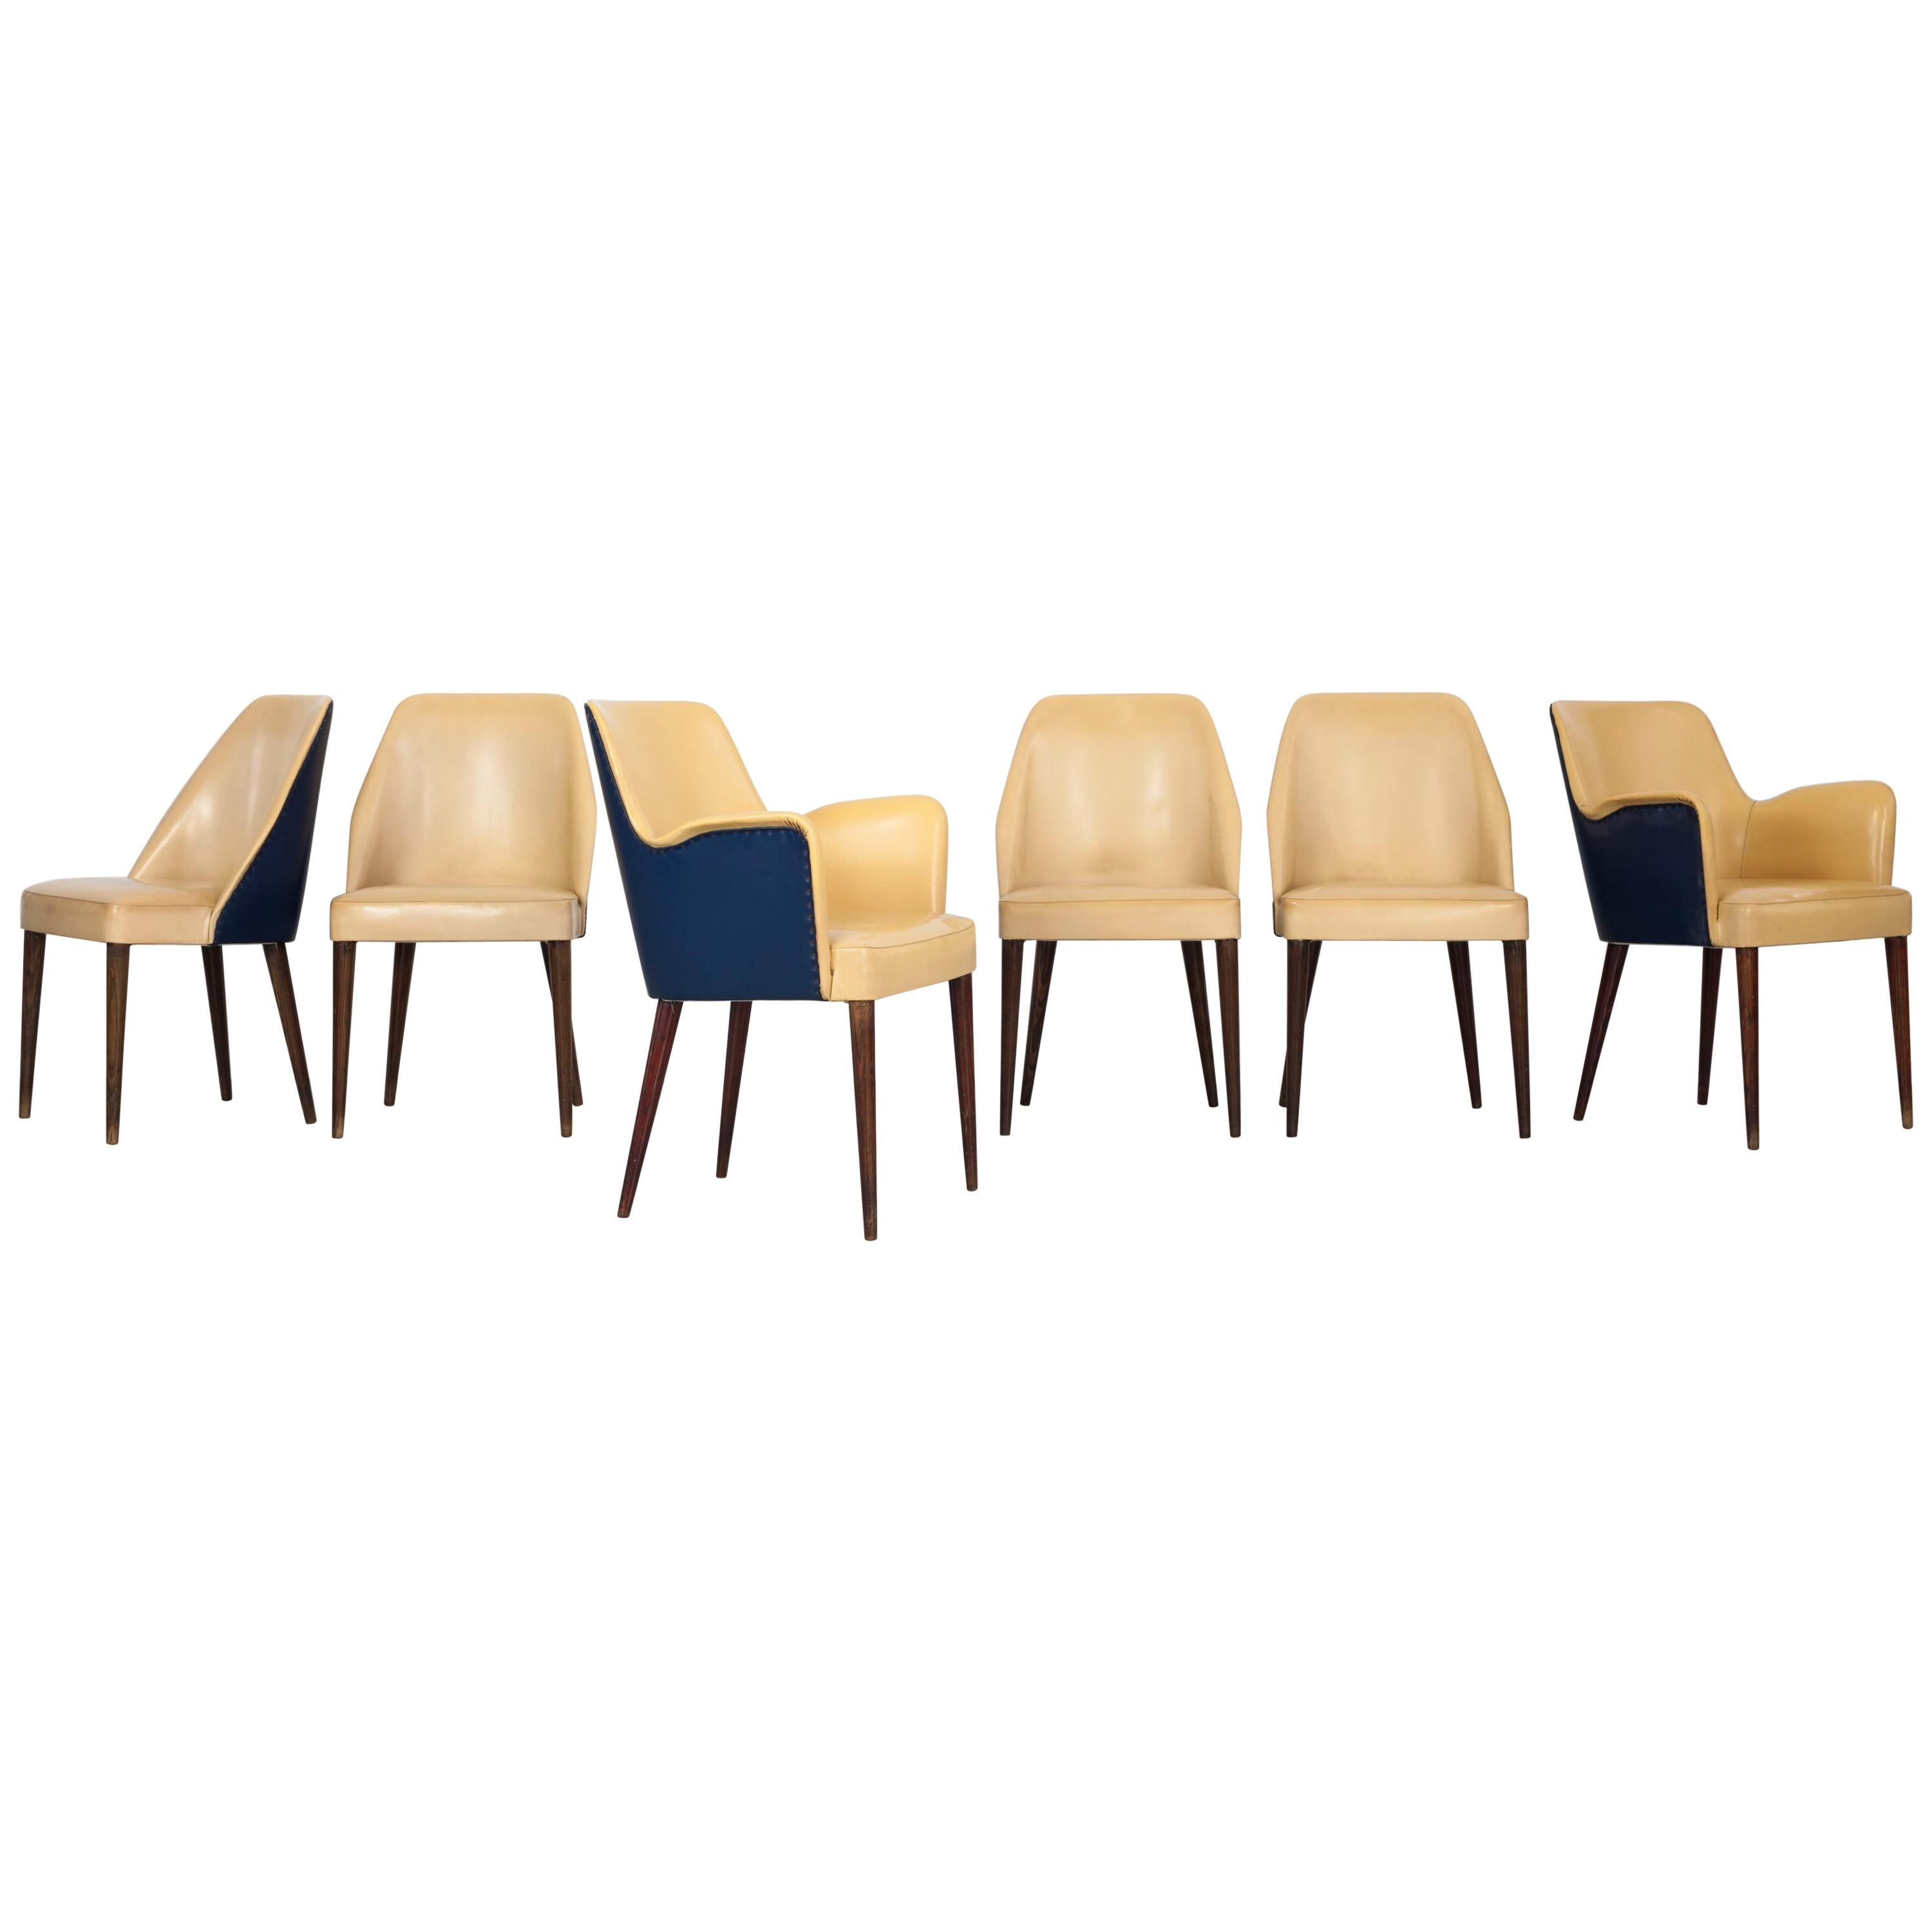 Set of 6 two-tone Dining Chairs, by Cassina in Italy 1950s